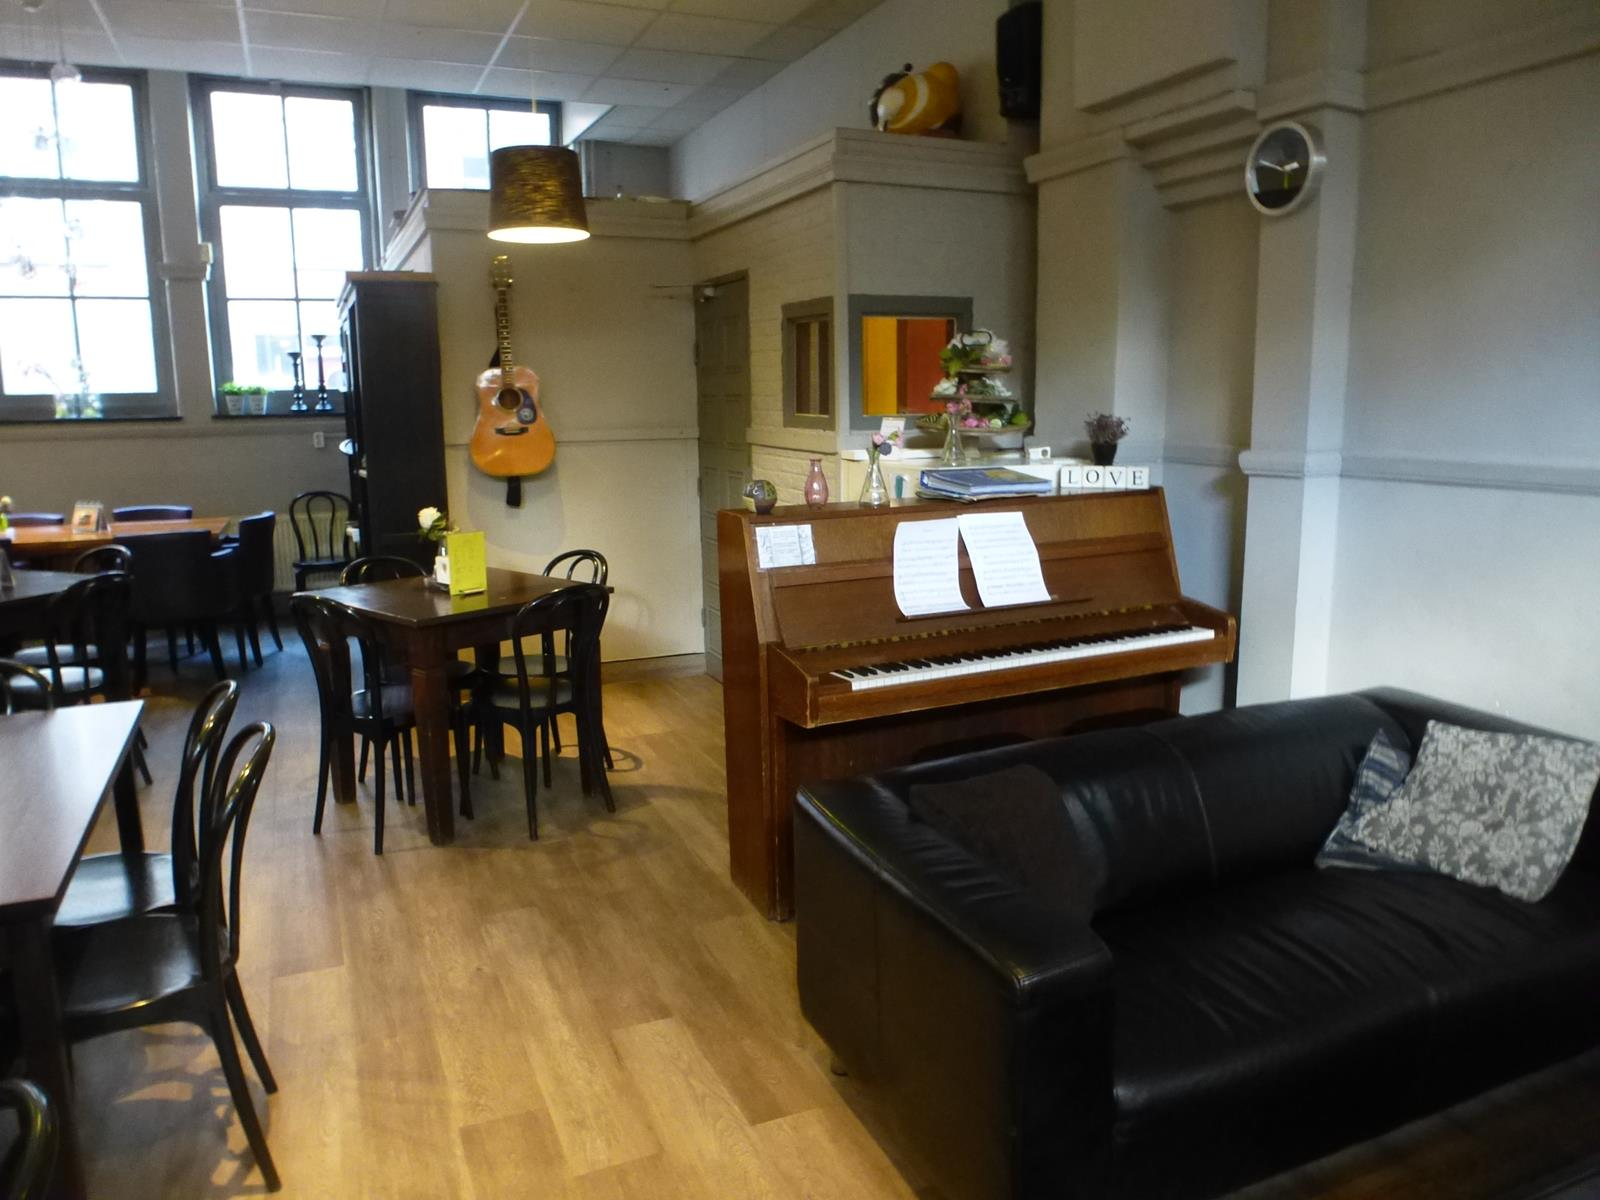 A Top Hostel Choice for Budget Travelers in Amsterdam